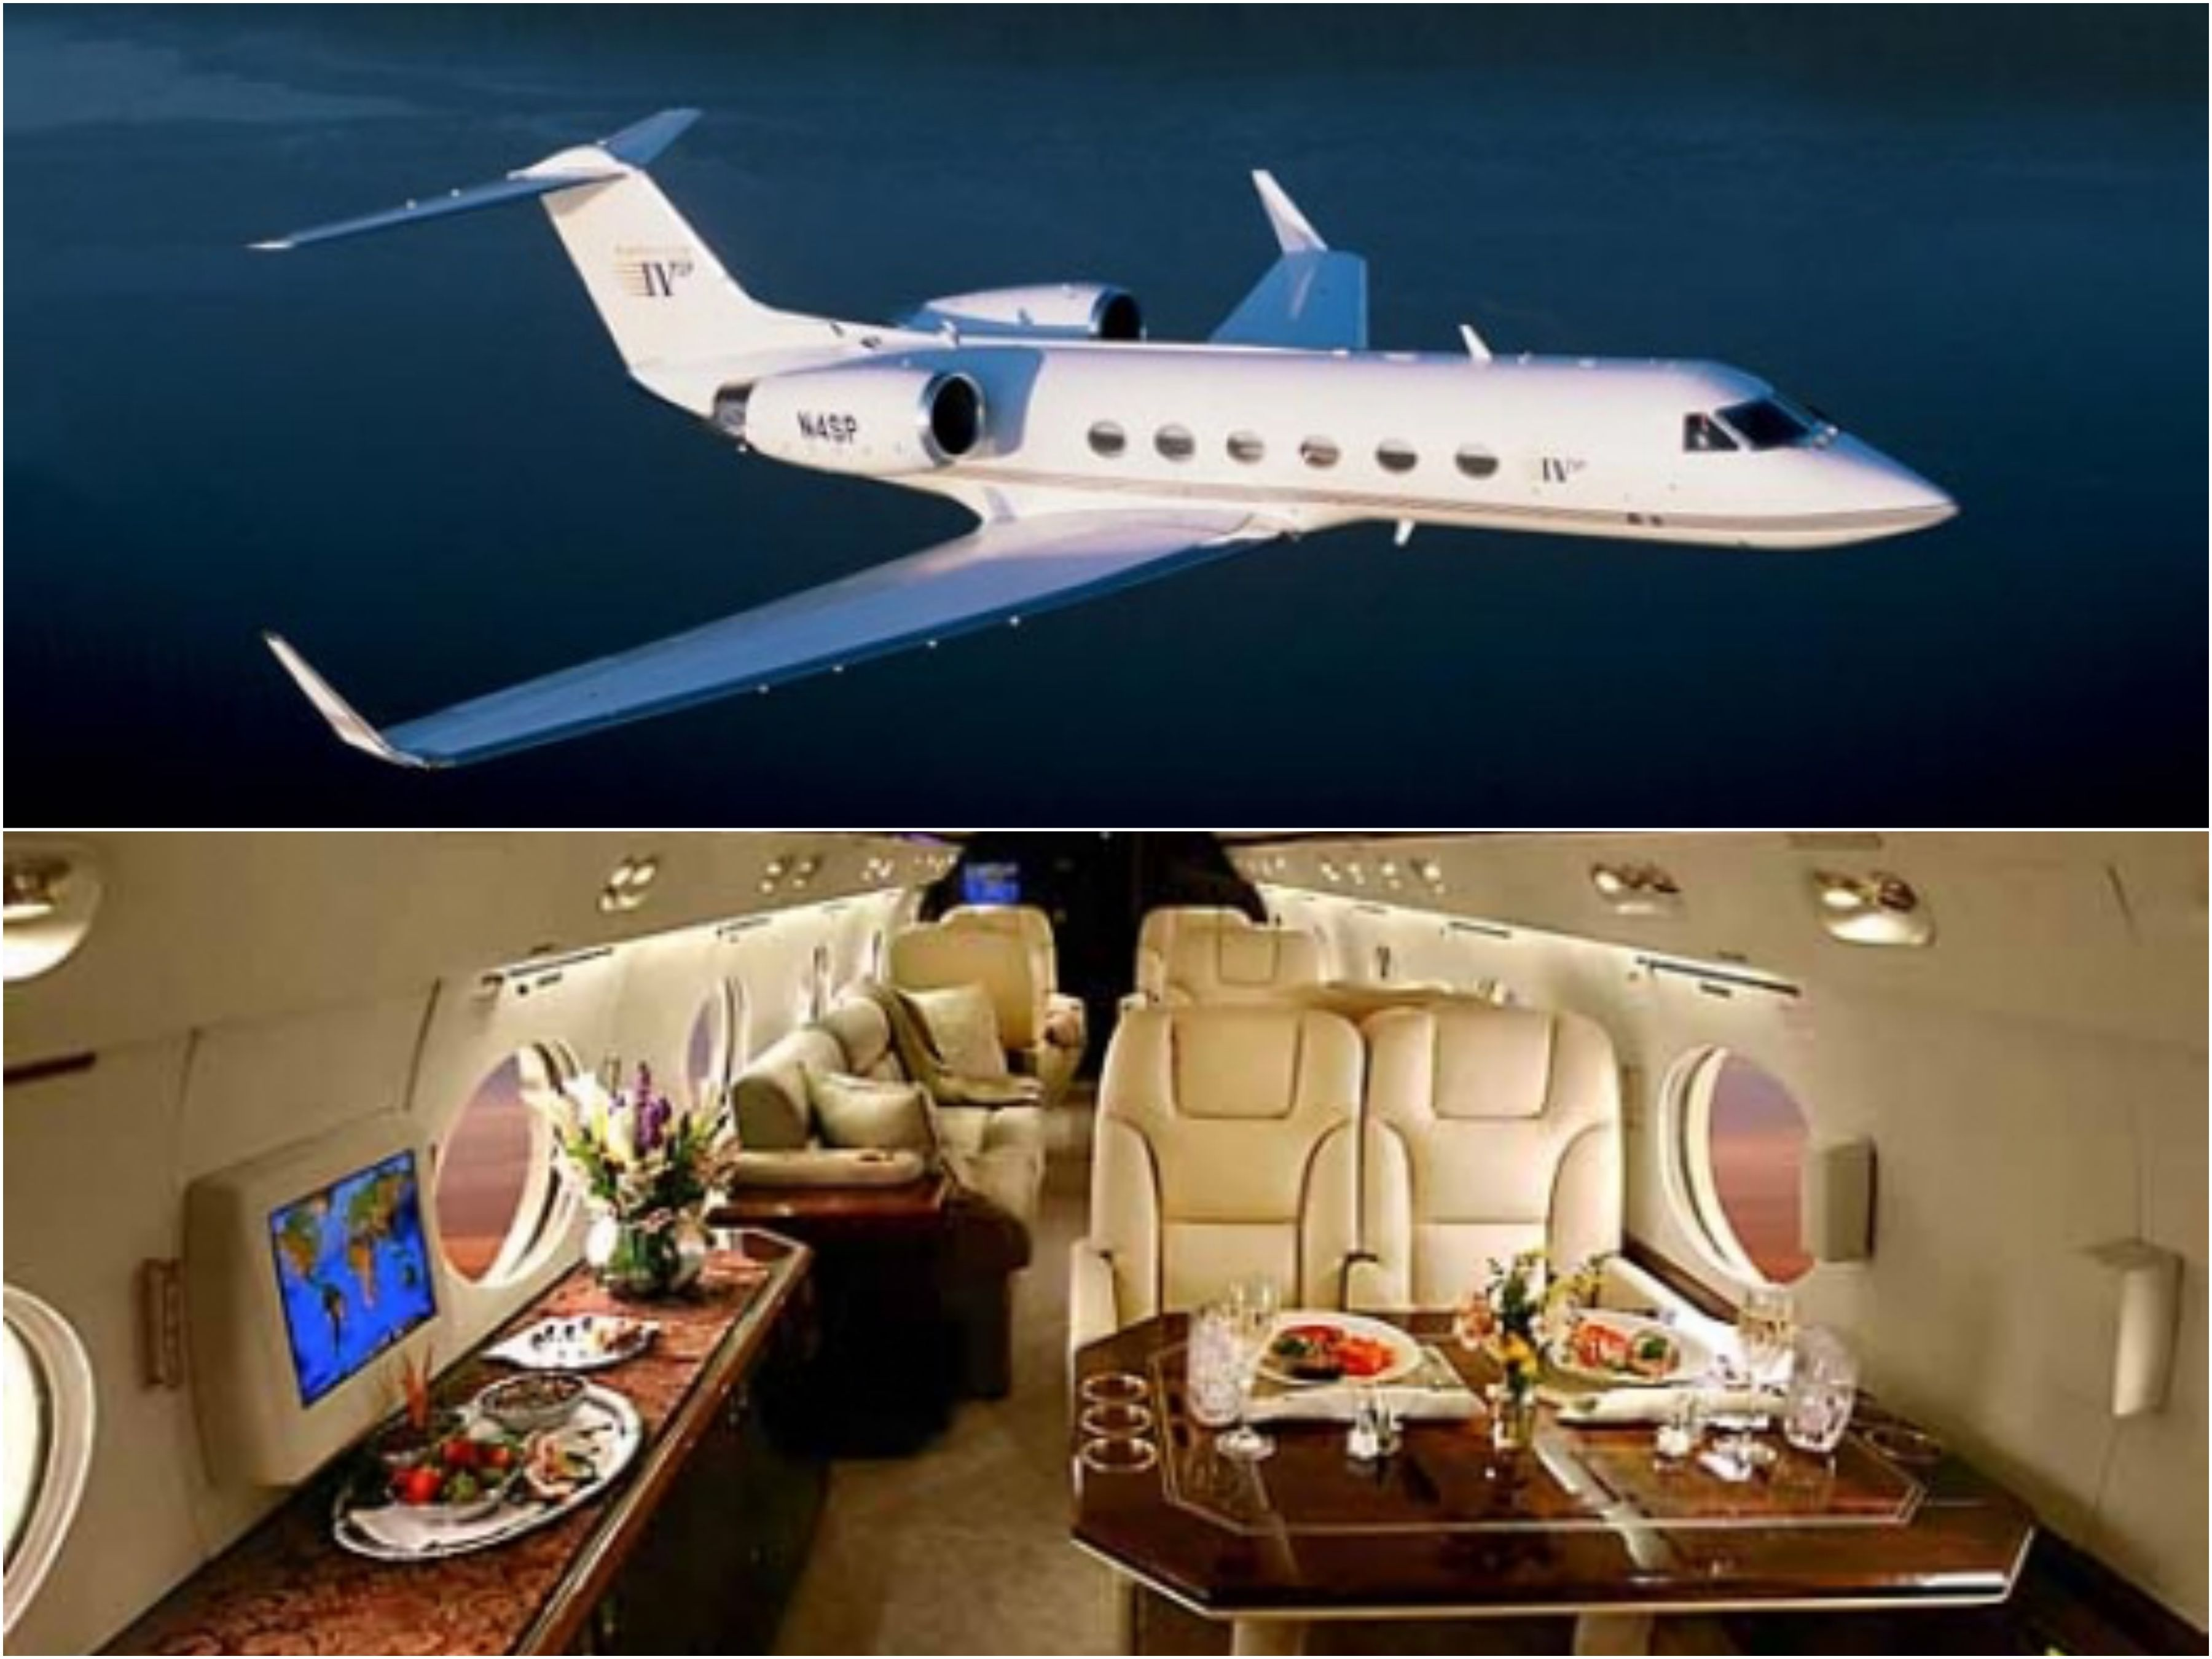 Tom Cruise Personal Jet 36m Personal Jet Millions Of